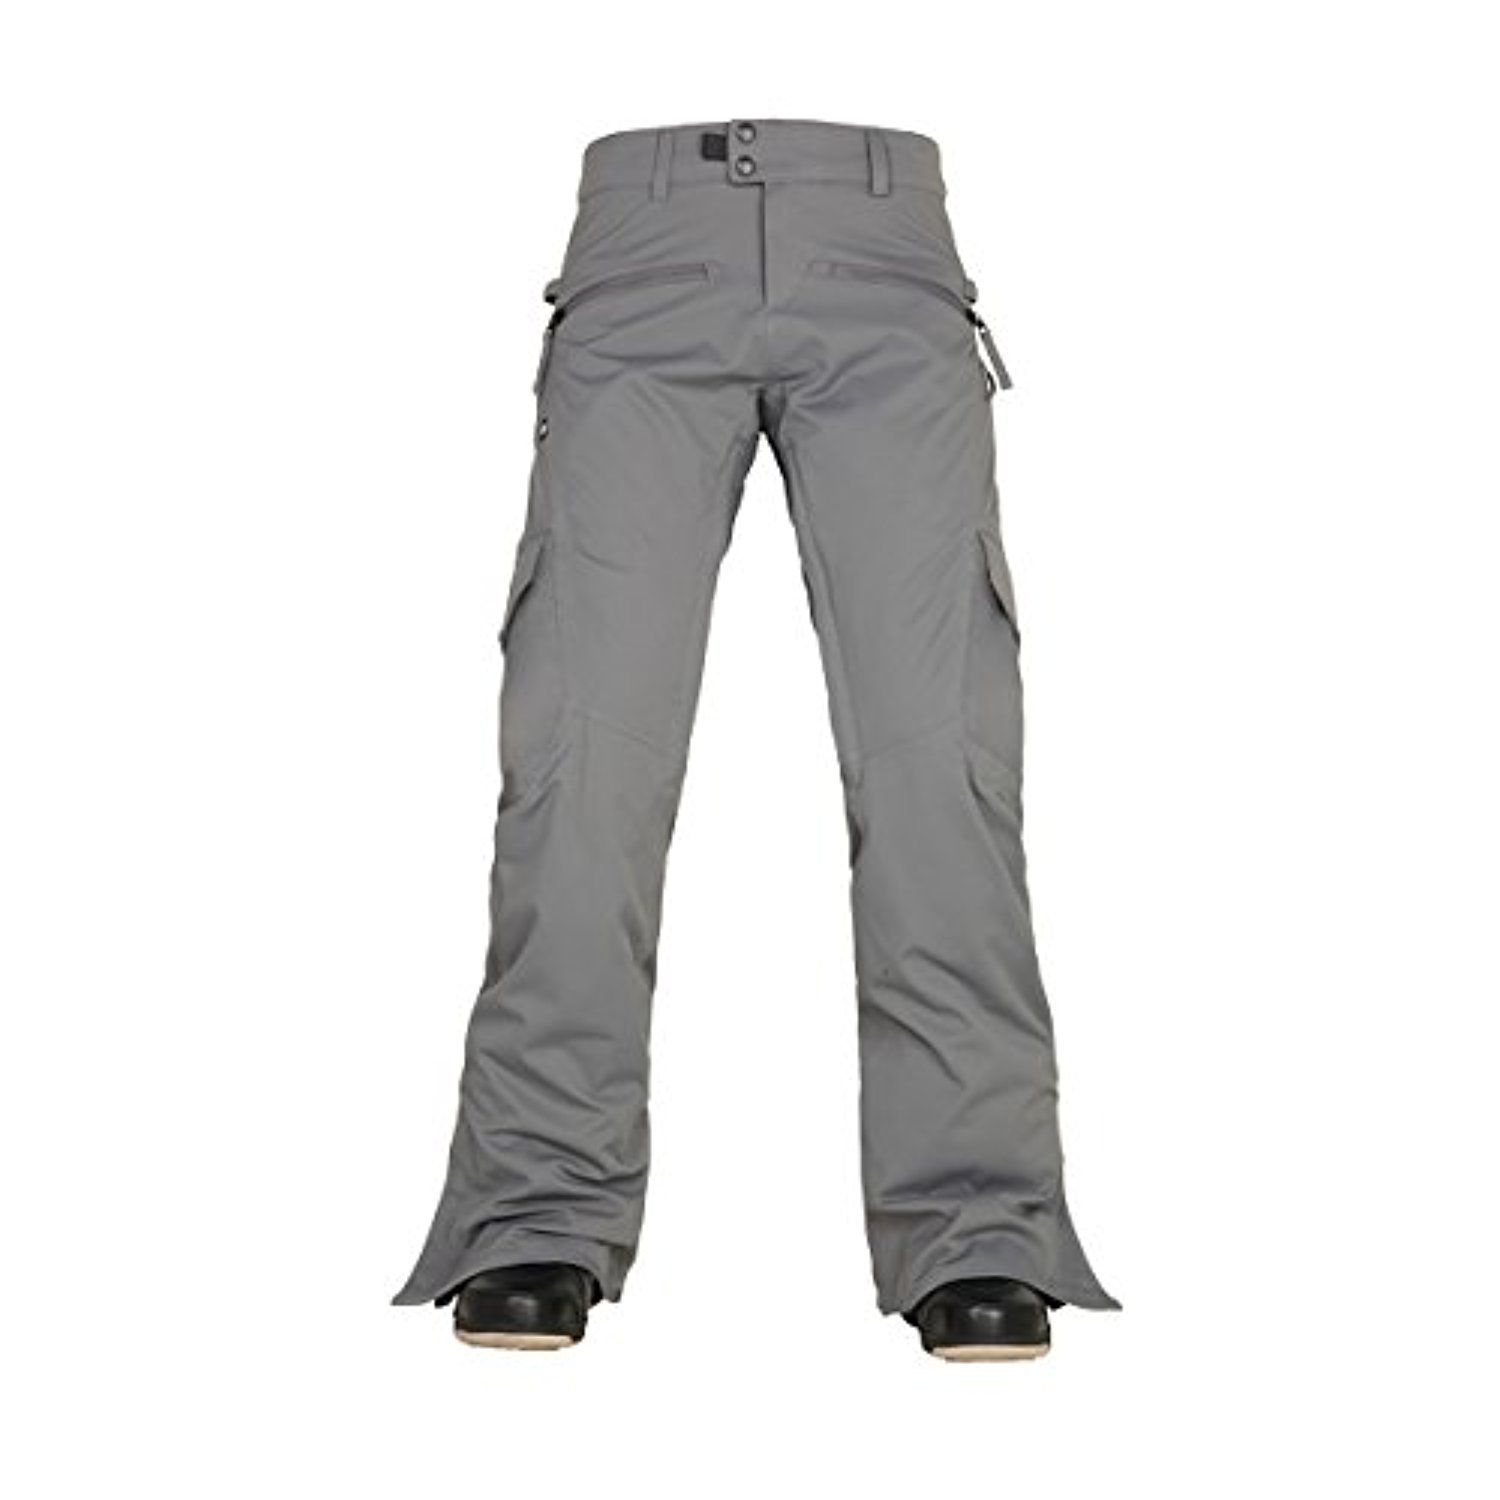 686 Women's Authentic Mistress Insulated Cargo Pants Steel Pants by 686